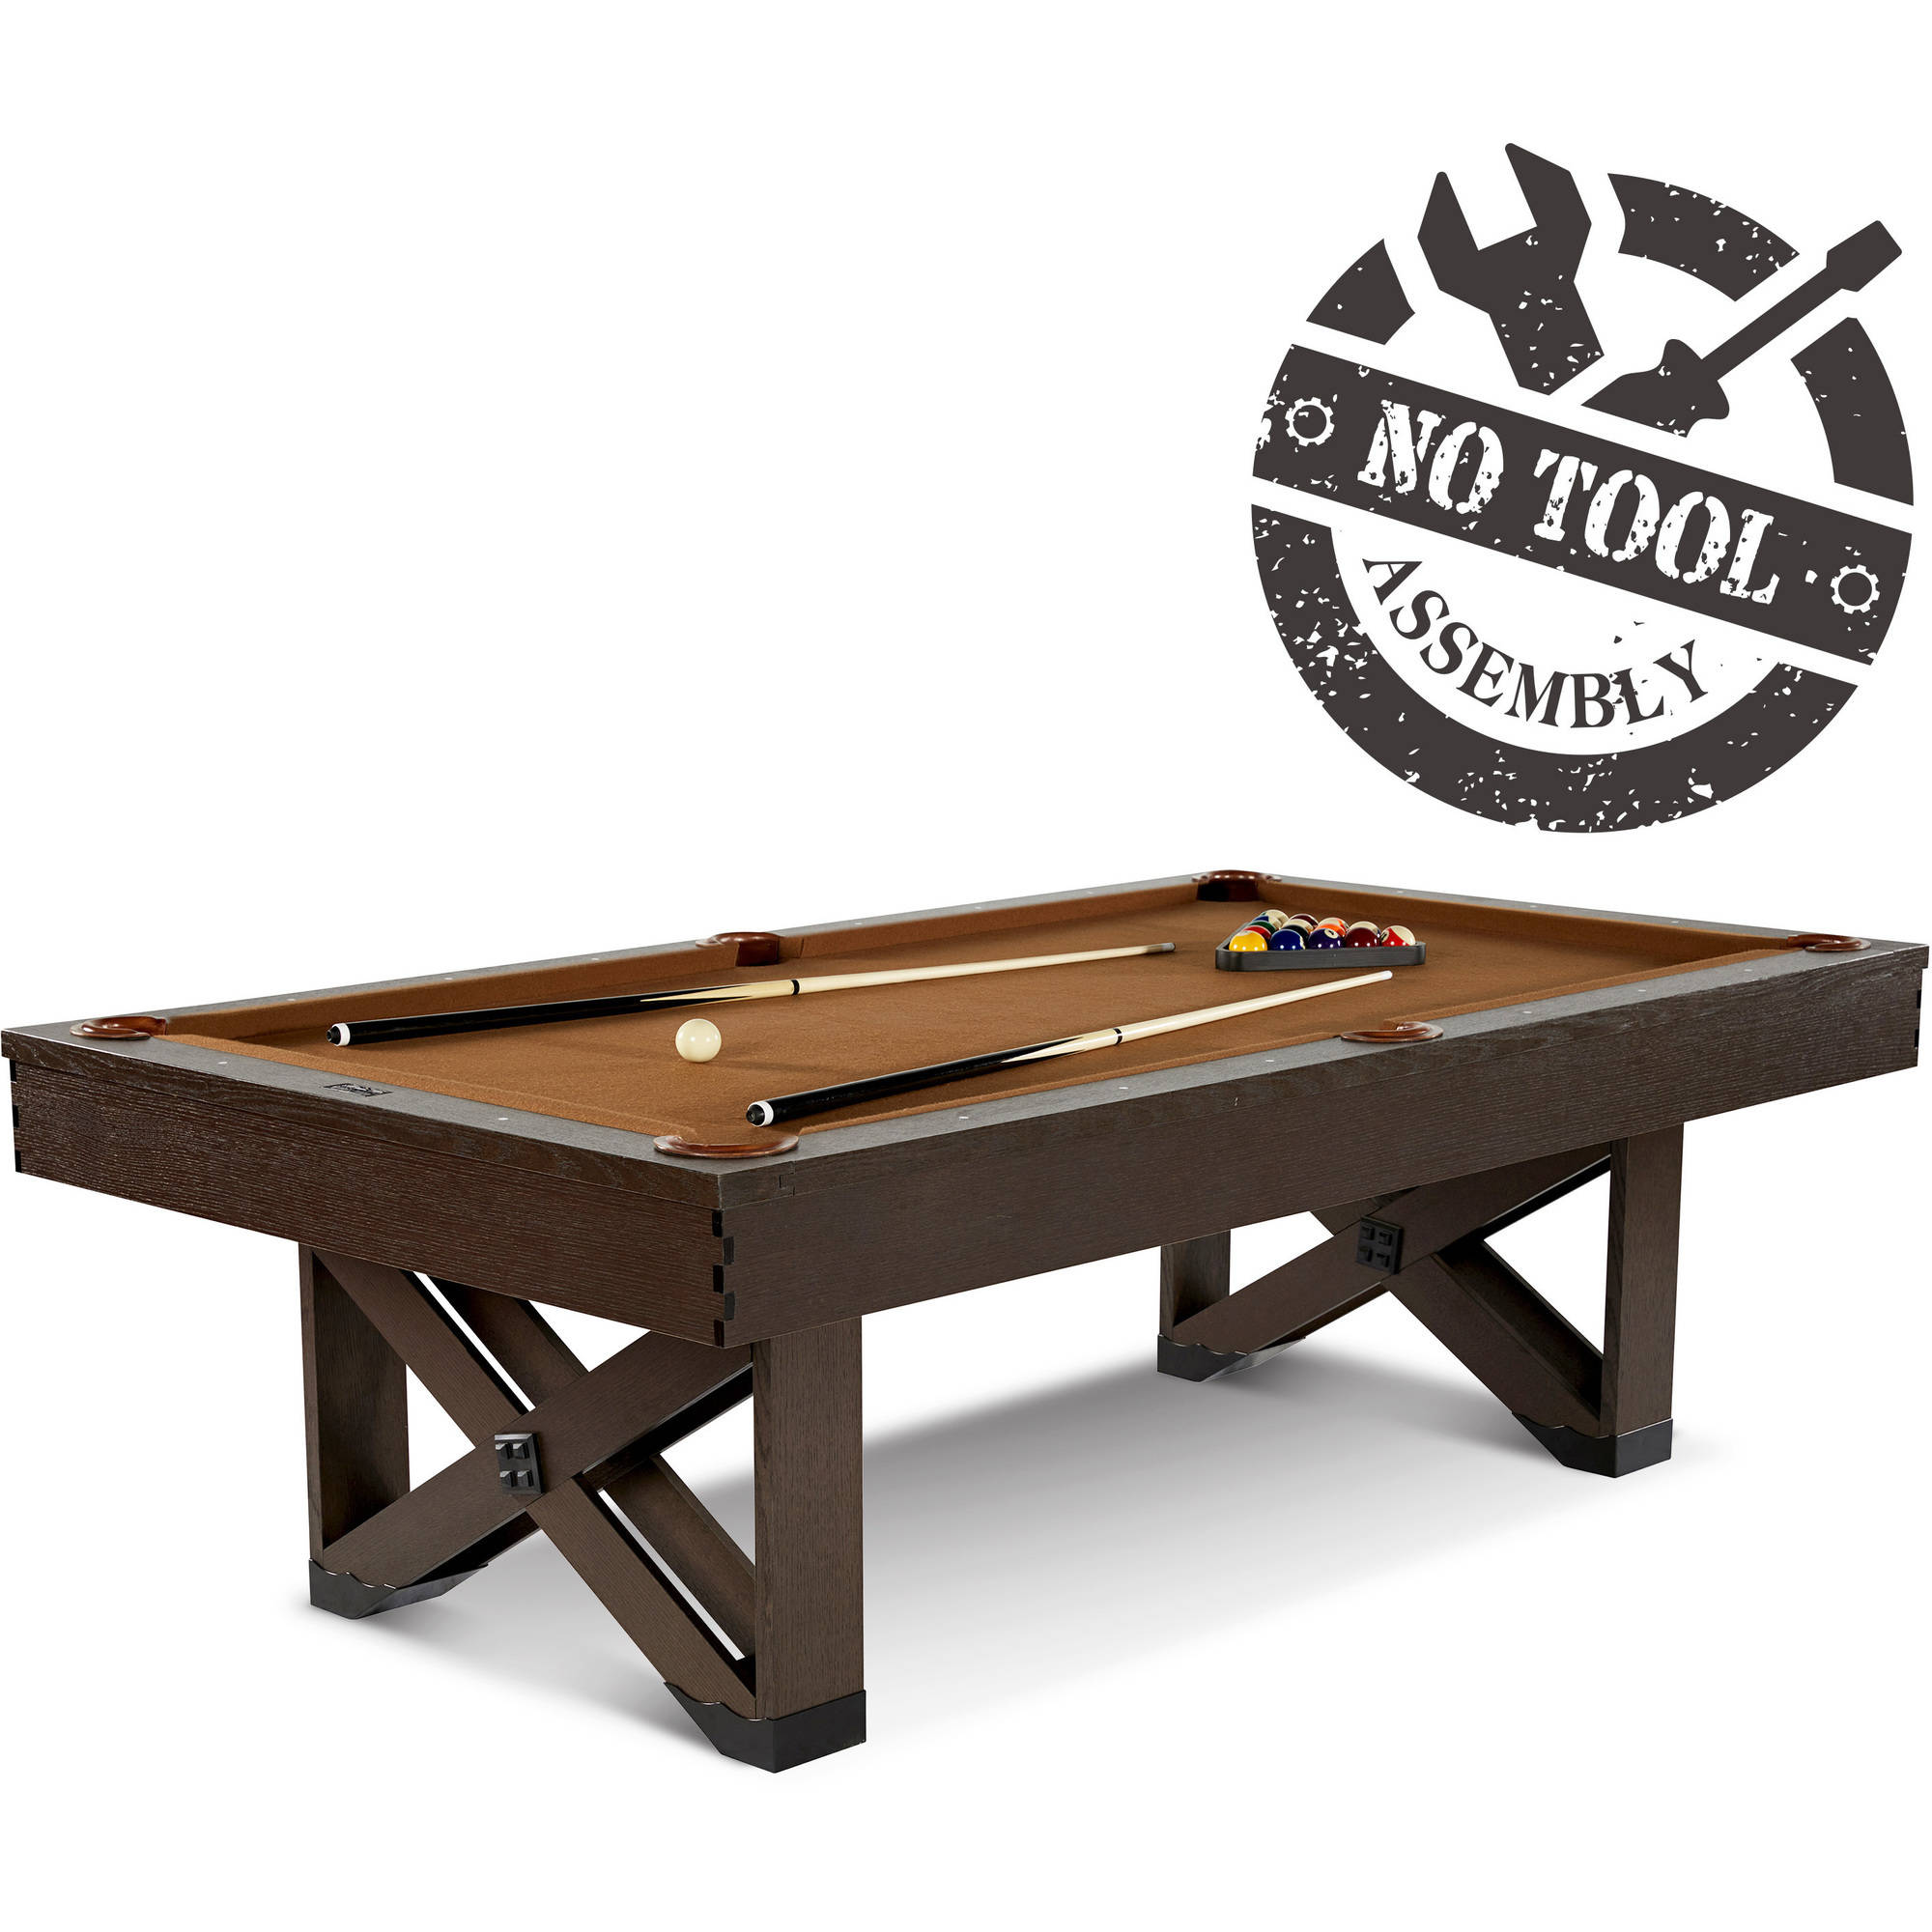 Barrington 8 Ft. Fremont Collection Billiard Table with Cue Set and Accessory Kit, No Tools Assembly